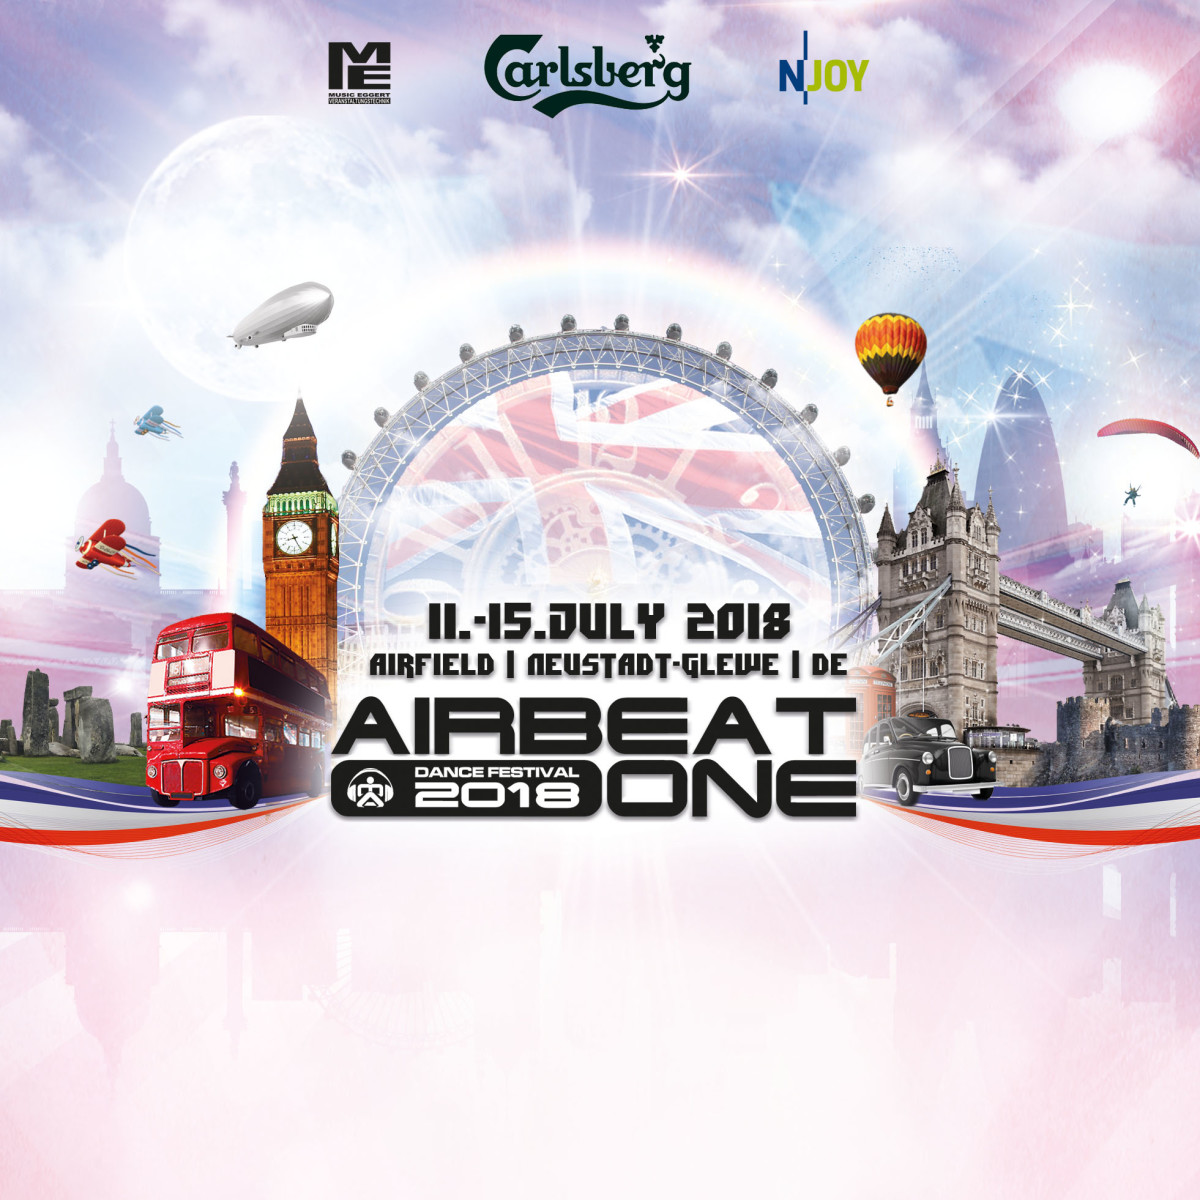 Airbeat-One_art